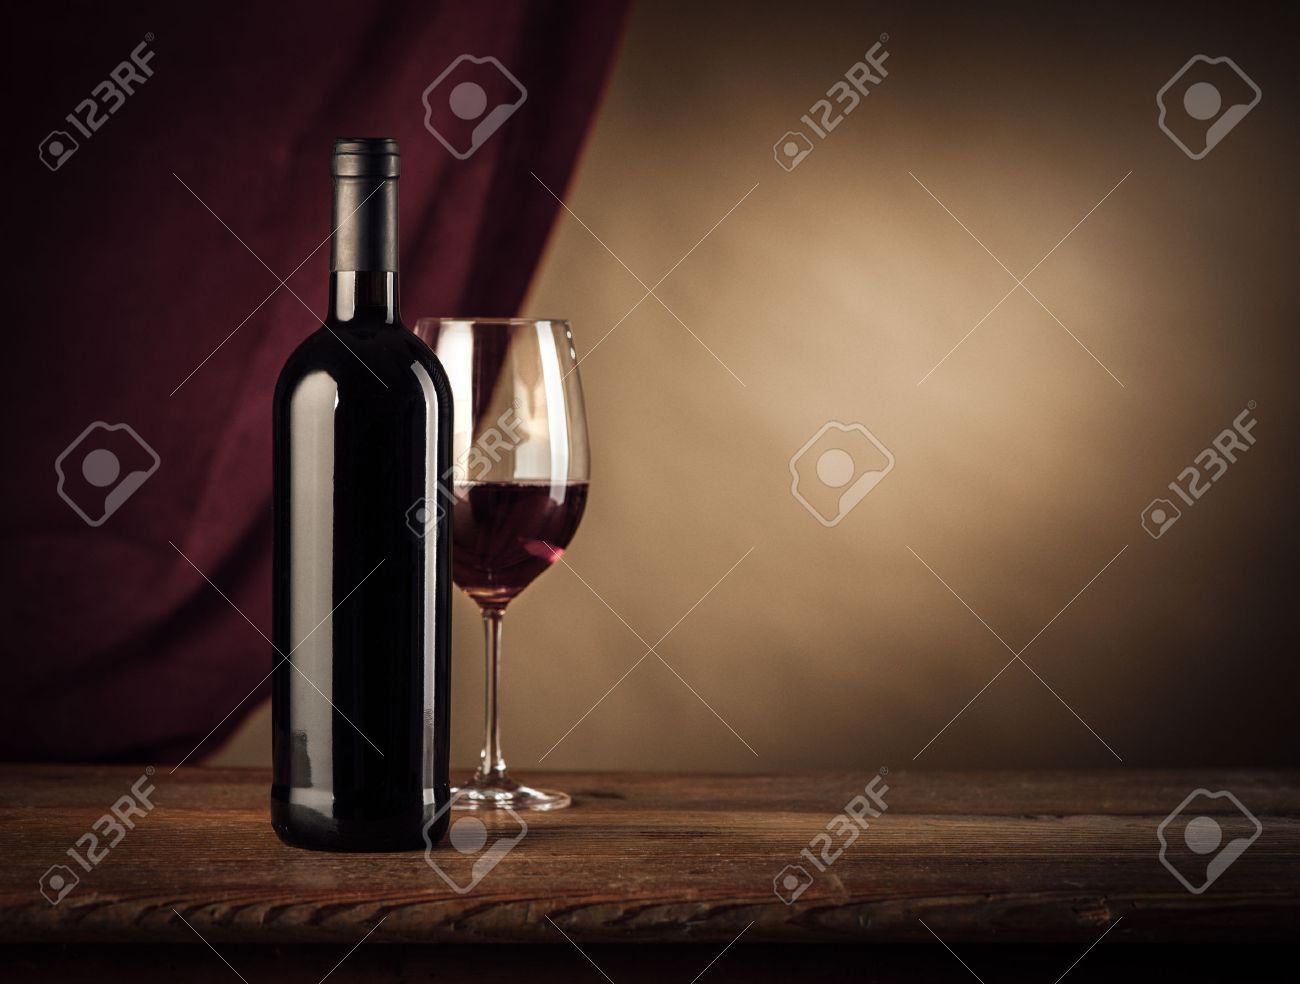 Red wine bottle and glass on a rustic wooden table, red cloth on background Stock Photo - 47105491